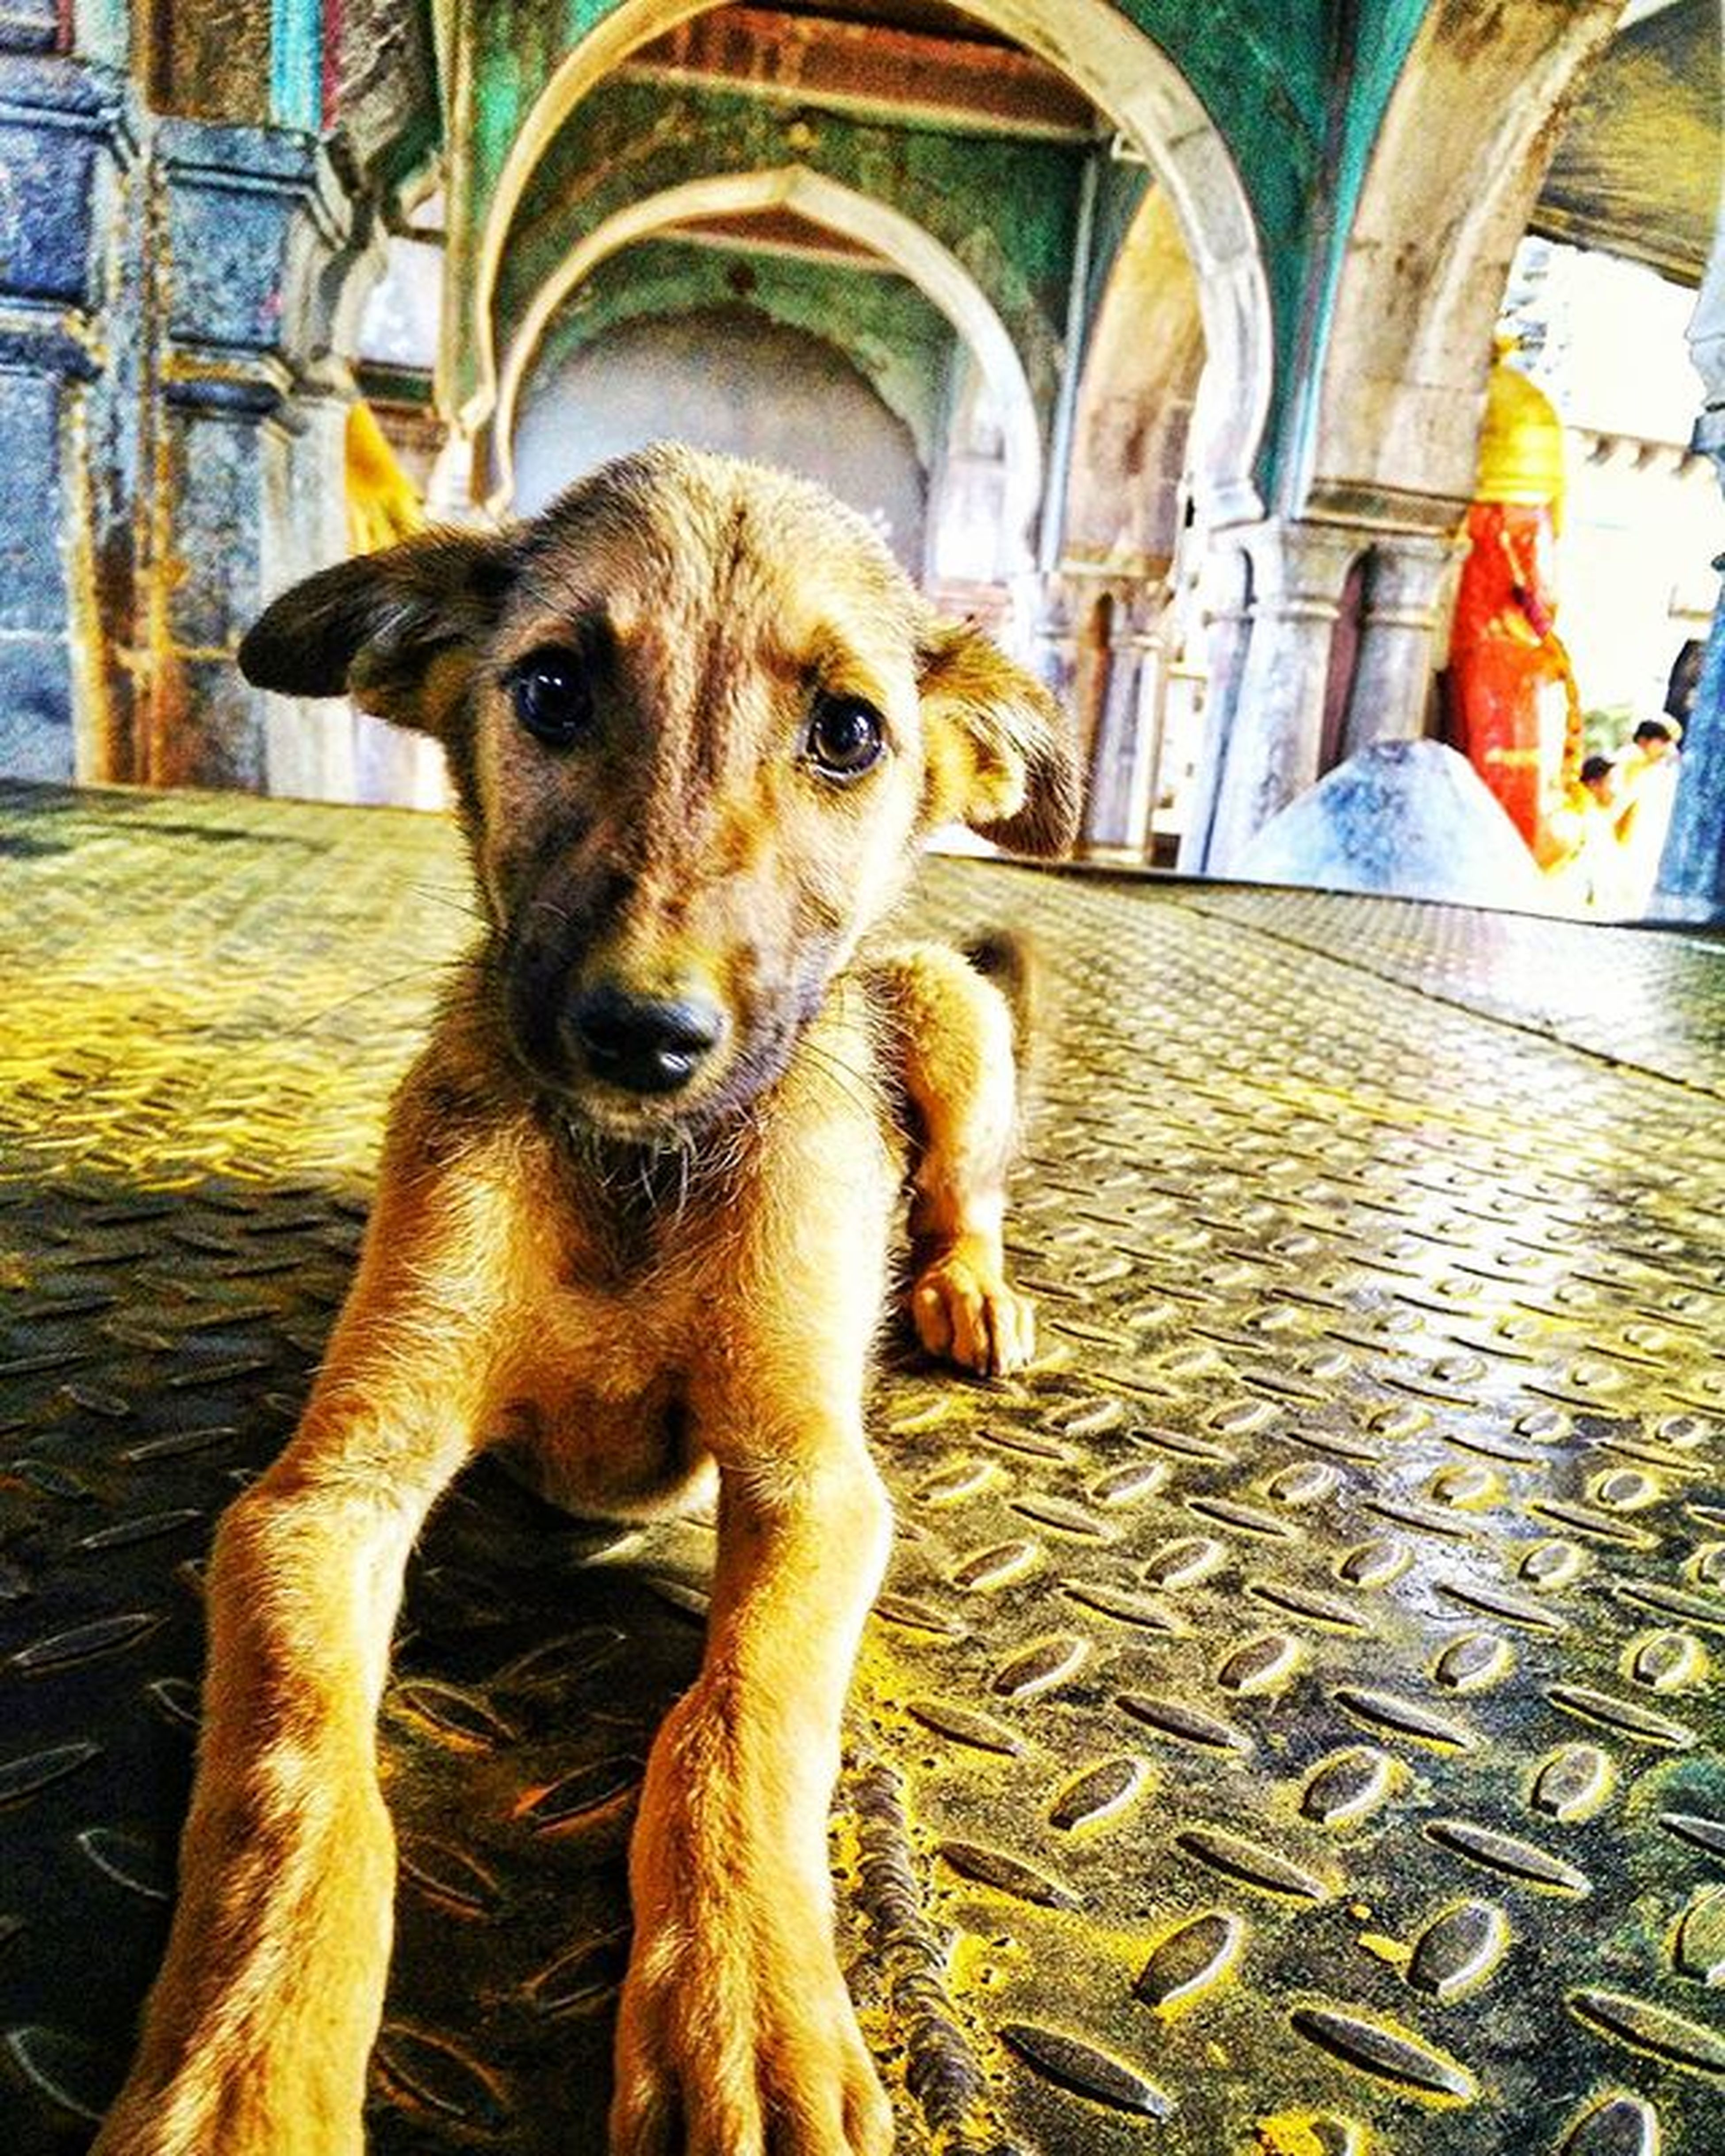 It's a rare sight to find a cute puppy bathed in turmeric... Could only happen in Sonyachi Jejuri 😍😍 Yelkot Yelkot, Jai Malhar ☺